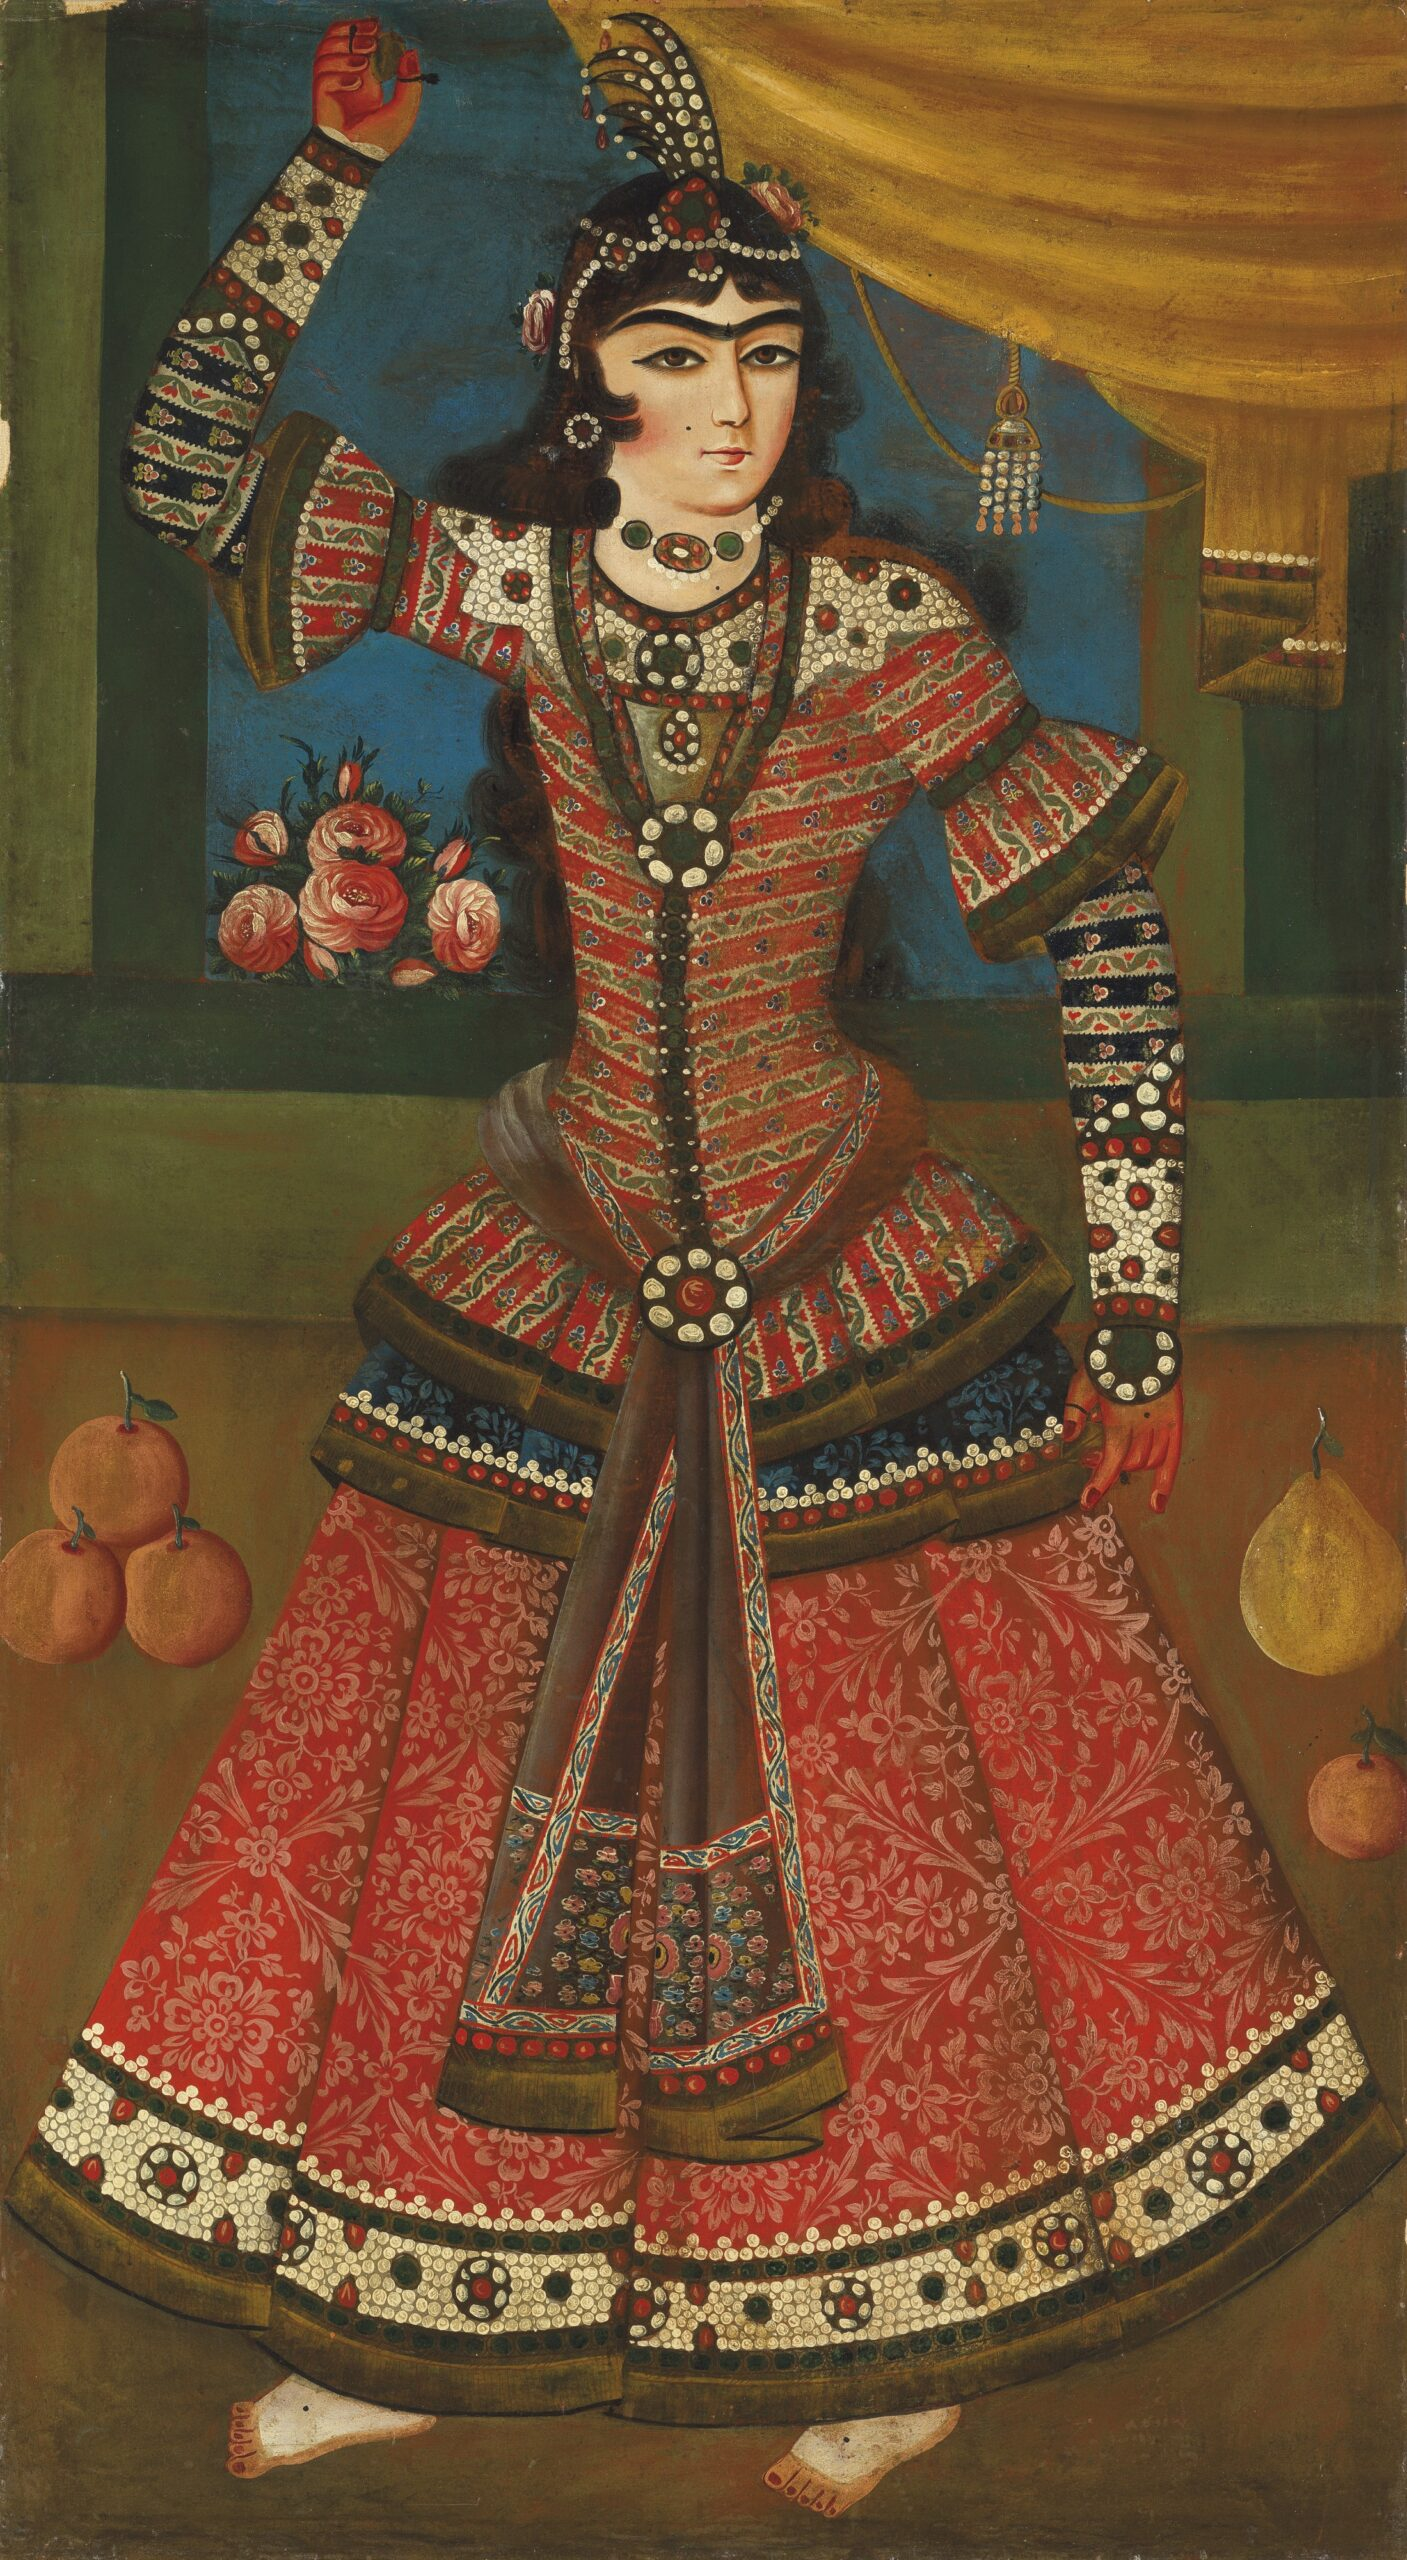 CHRISTIE'S A Qajar dancing girl, Iran Circa 1840 60.1/4 x 33in. (152.5 x 84cm.)